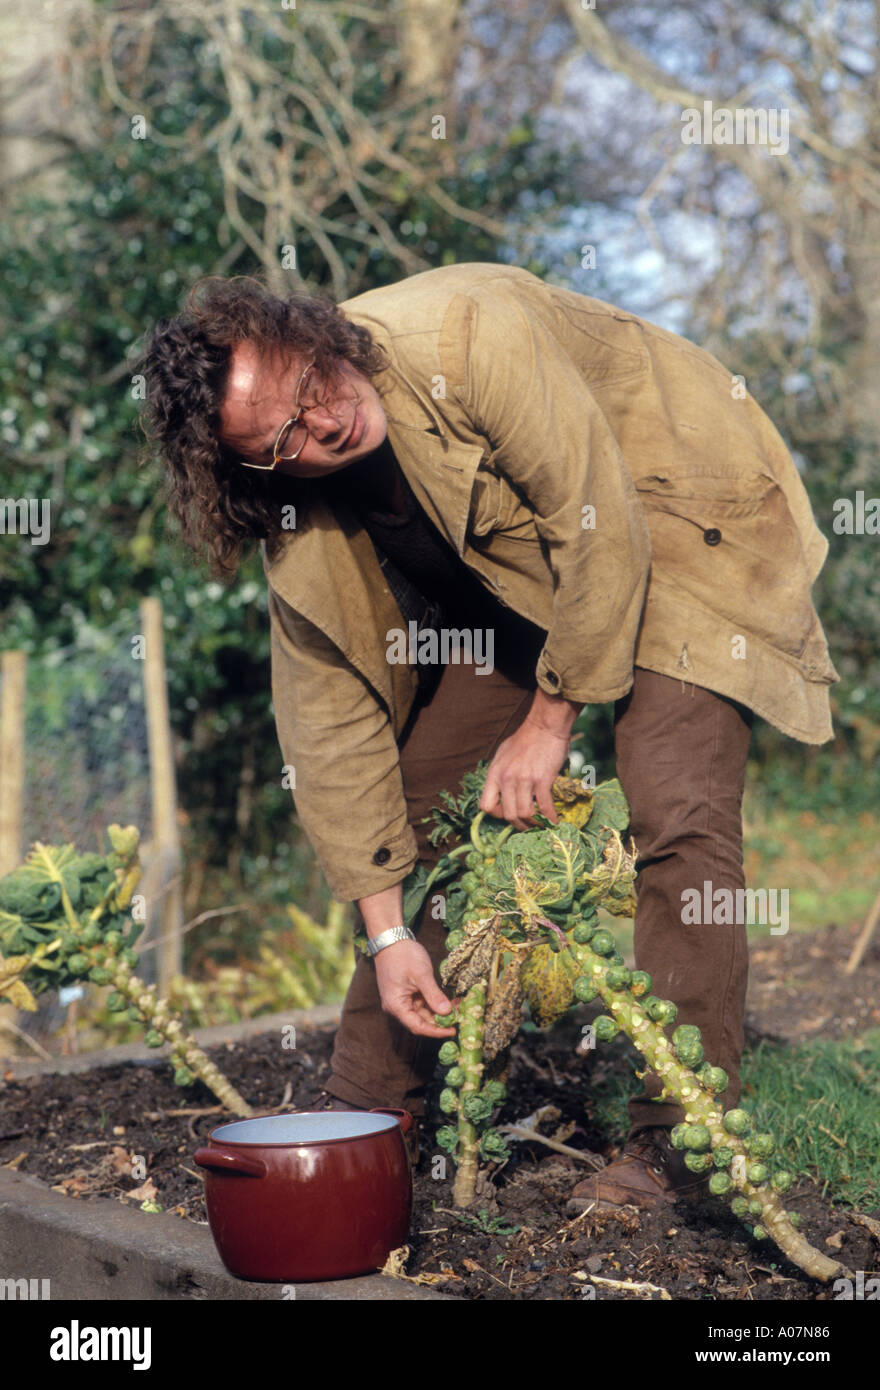 Hugh Fearnley Whittingstall TV food Chef collects sprouts at the River Cottage in Dorset - Stock Image